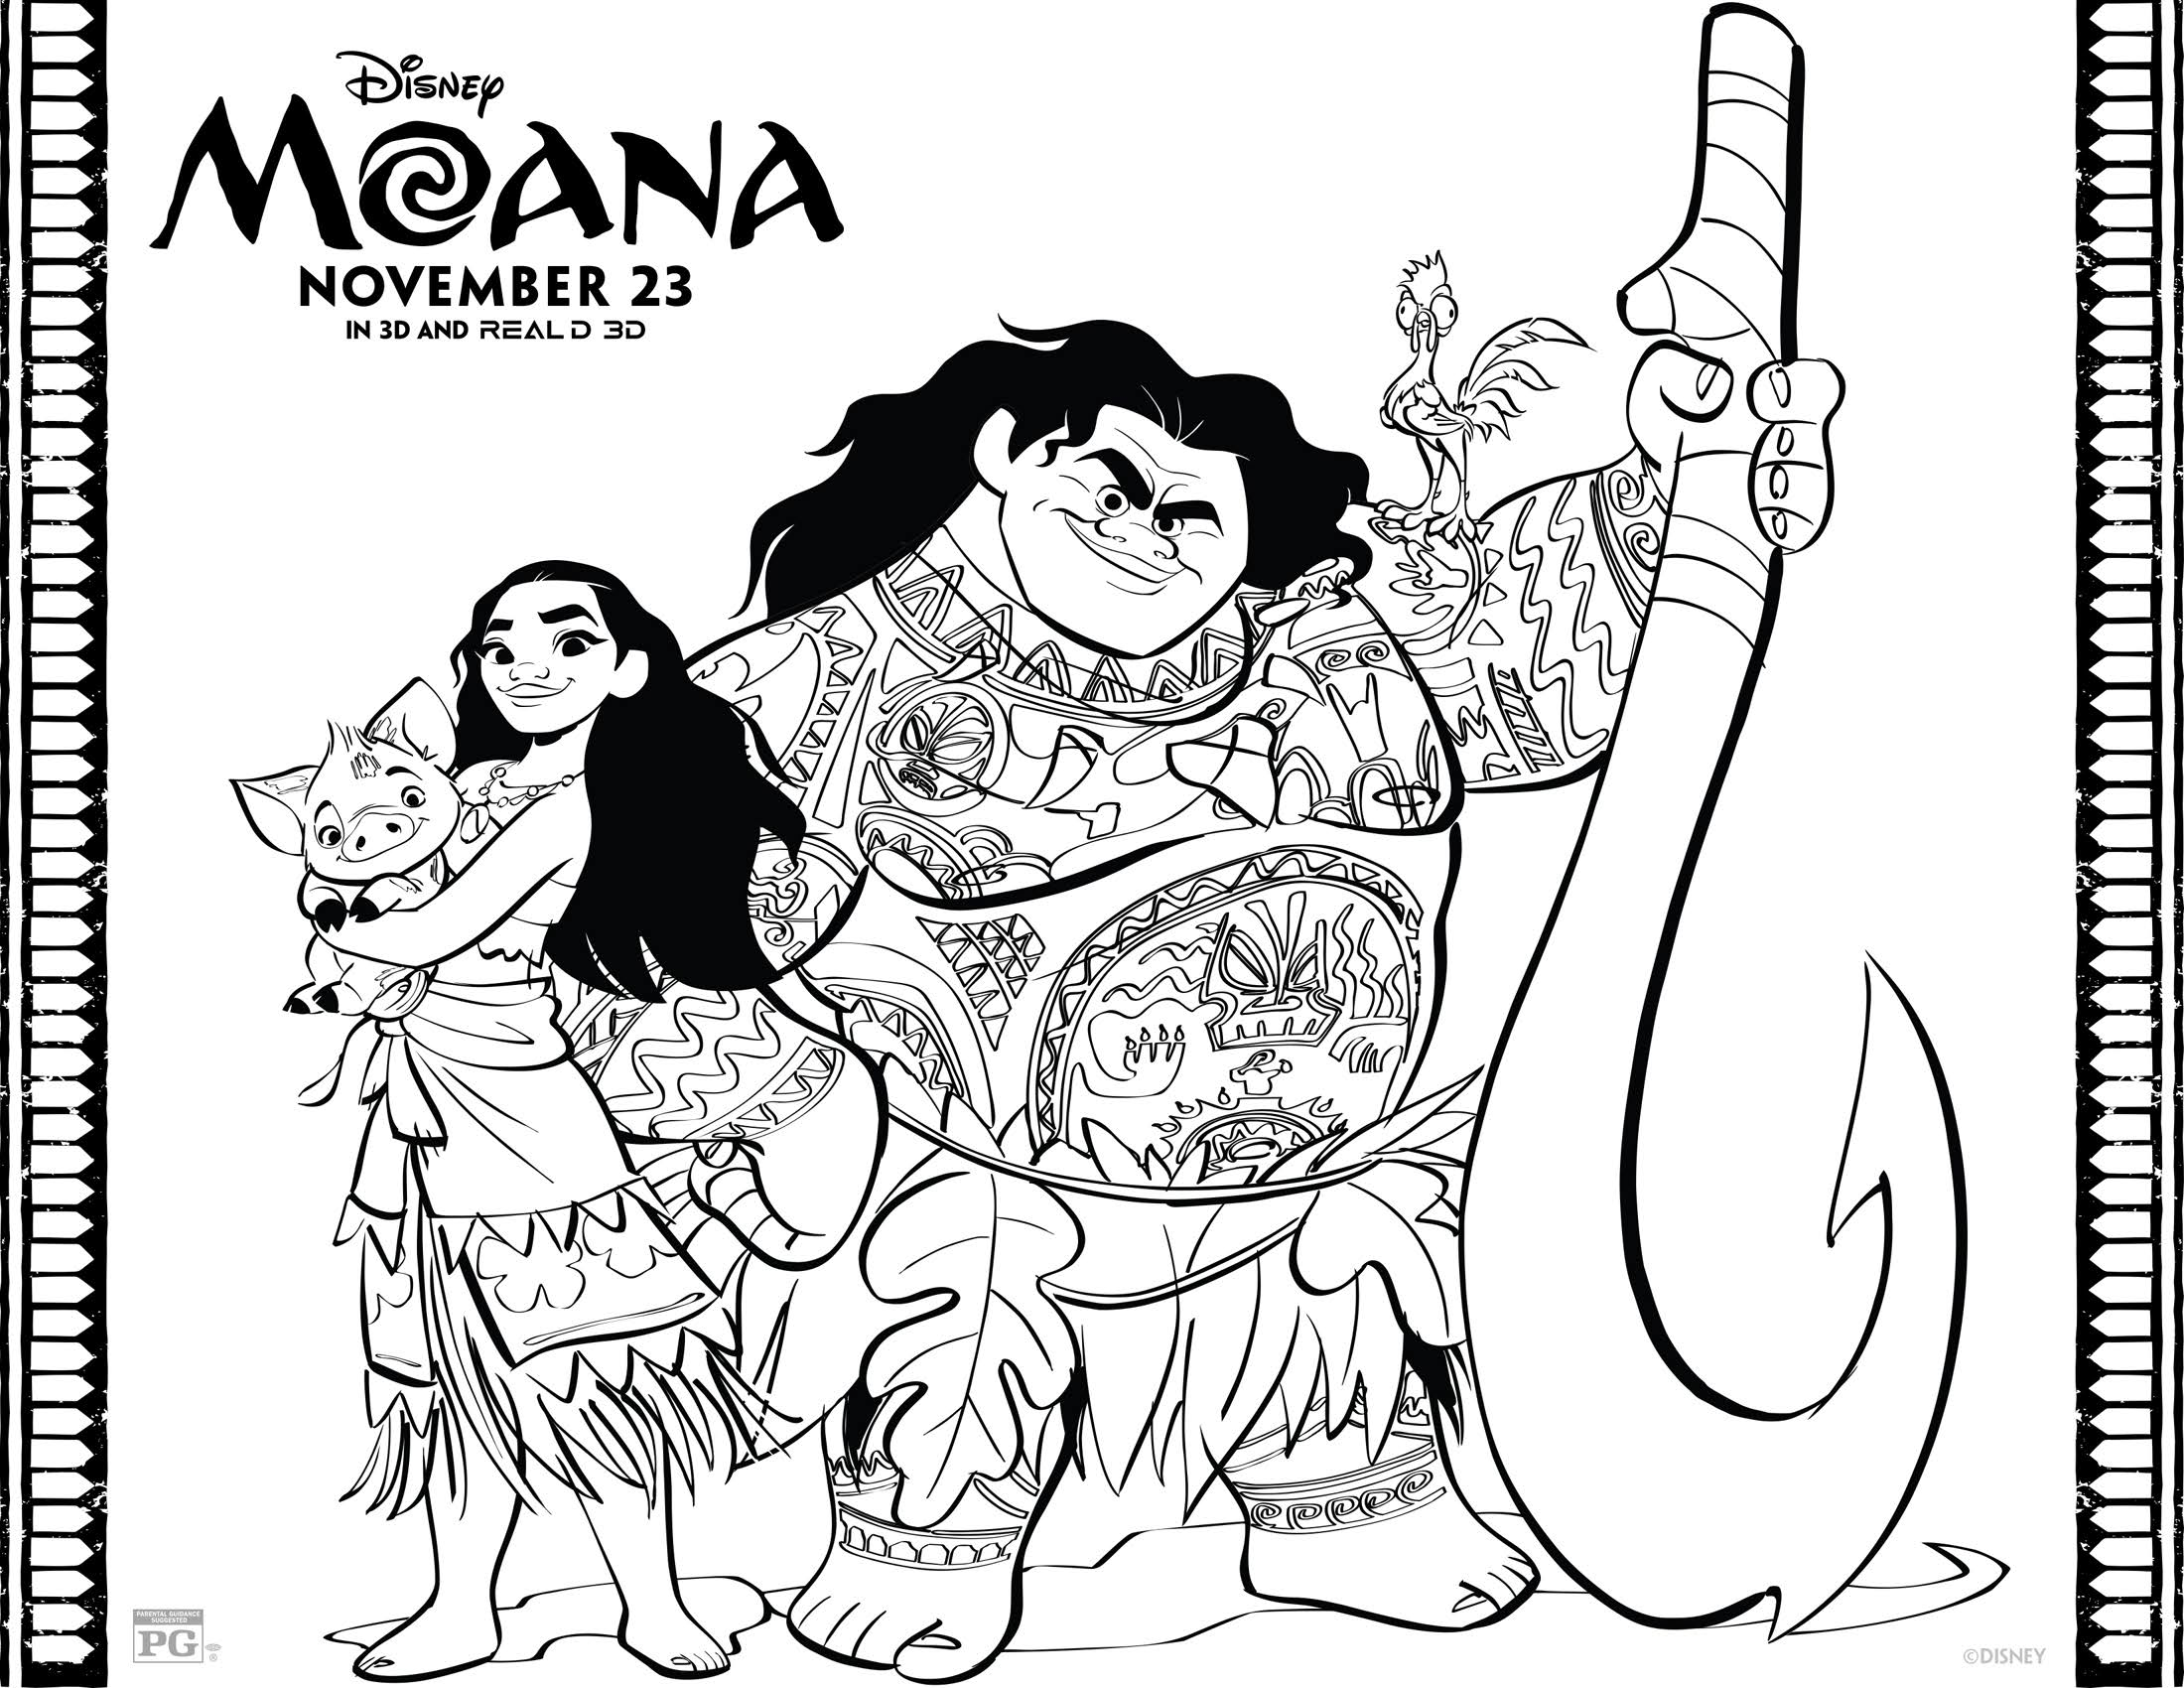 Disneys Moana Coloring Pages and Activity Sheets Printables